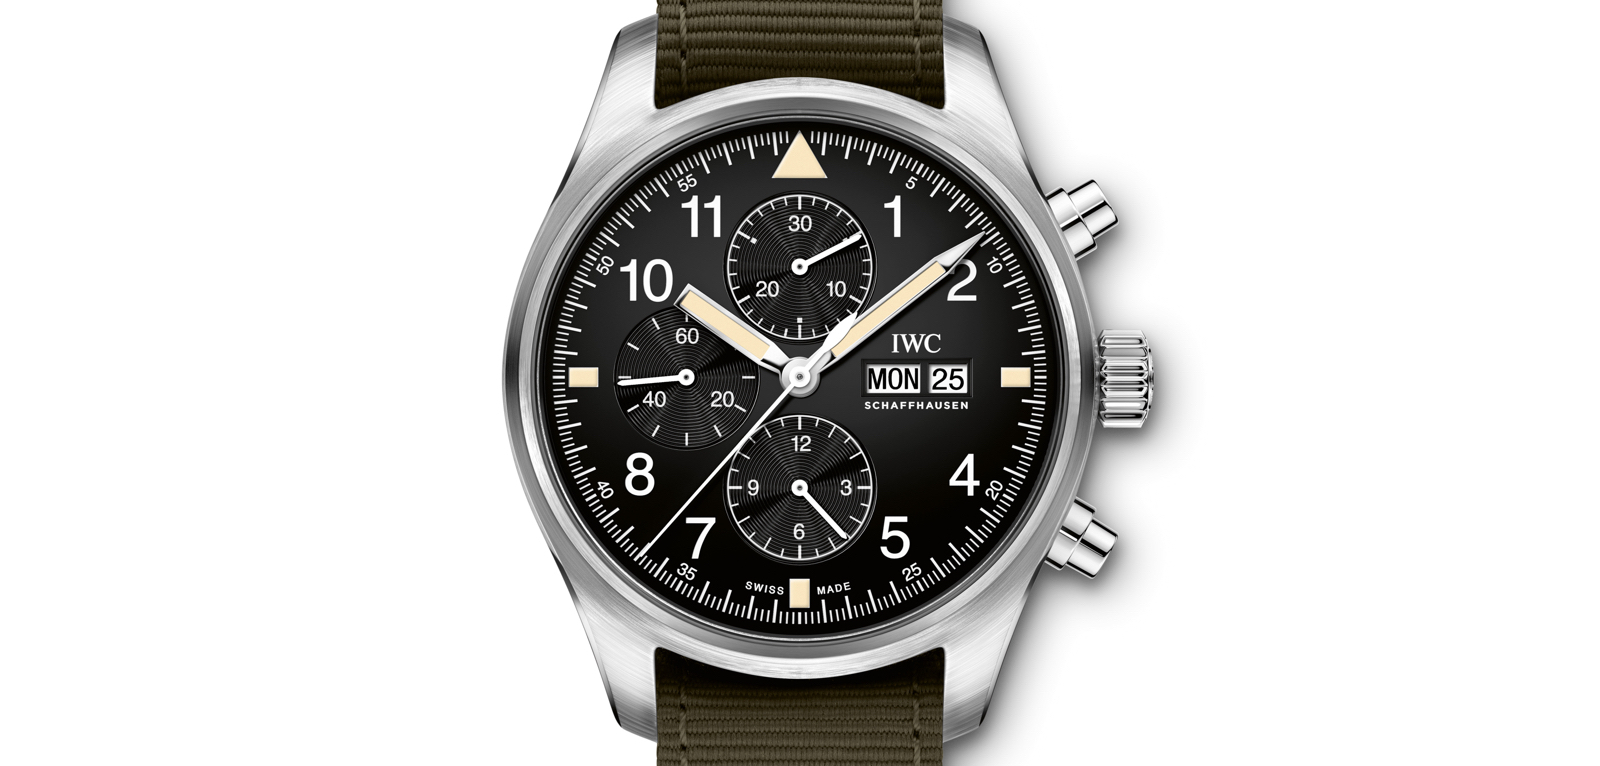 IWC Pilot Chrono 1994 Cover